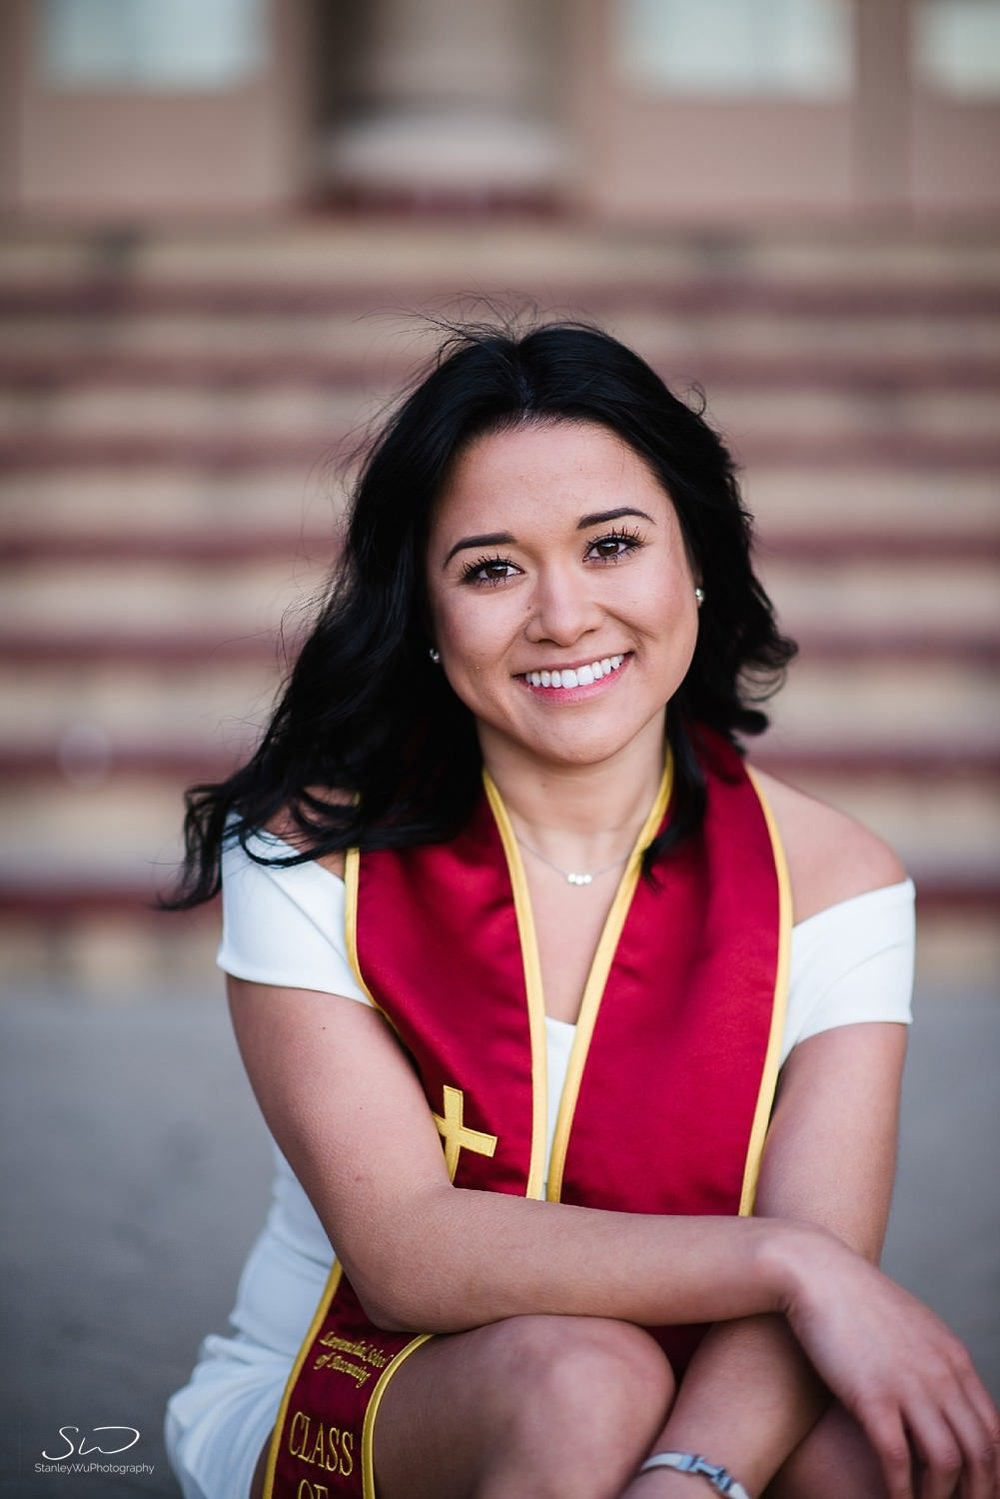 los-angeles-usc-graduation-senior-portraits_0029.jpg